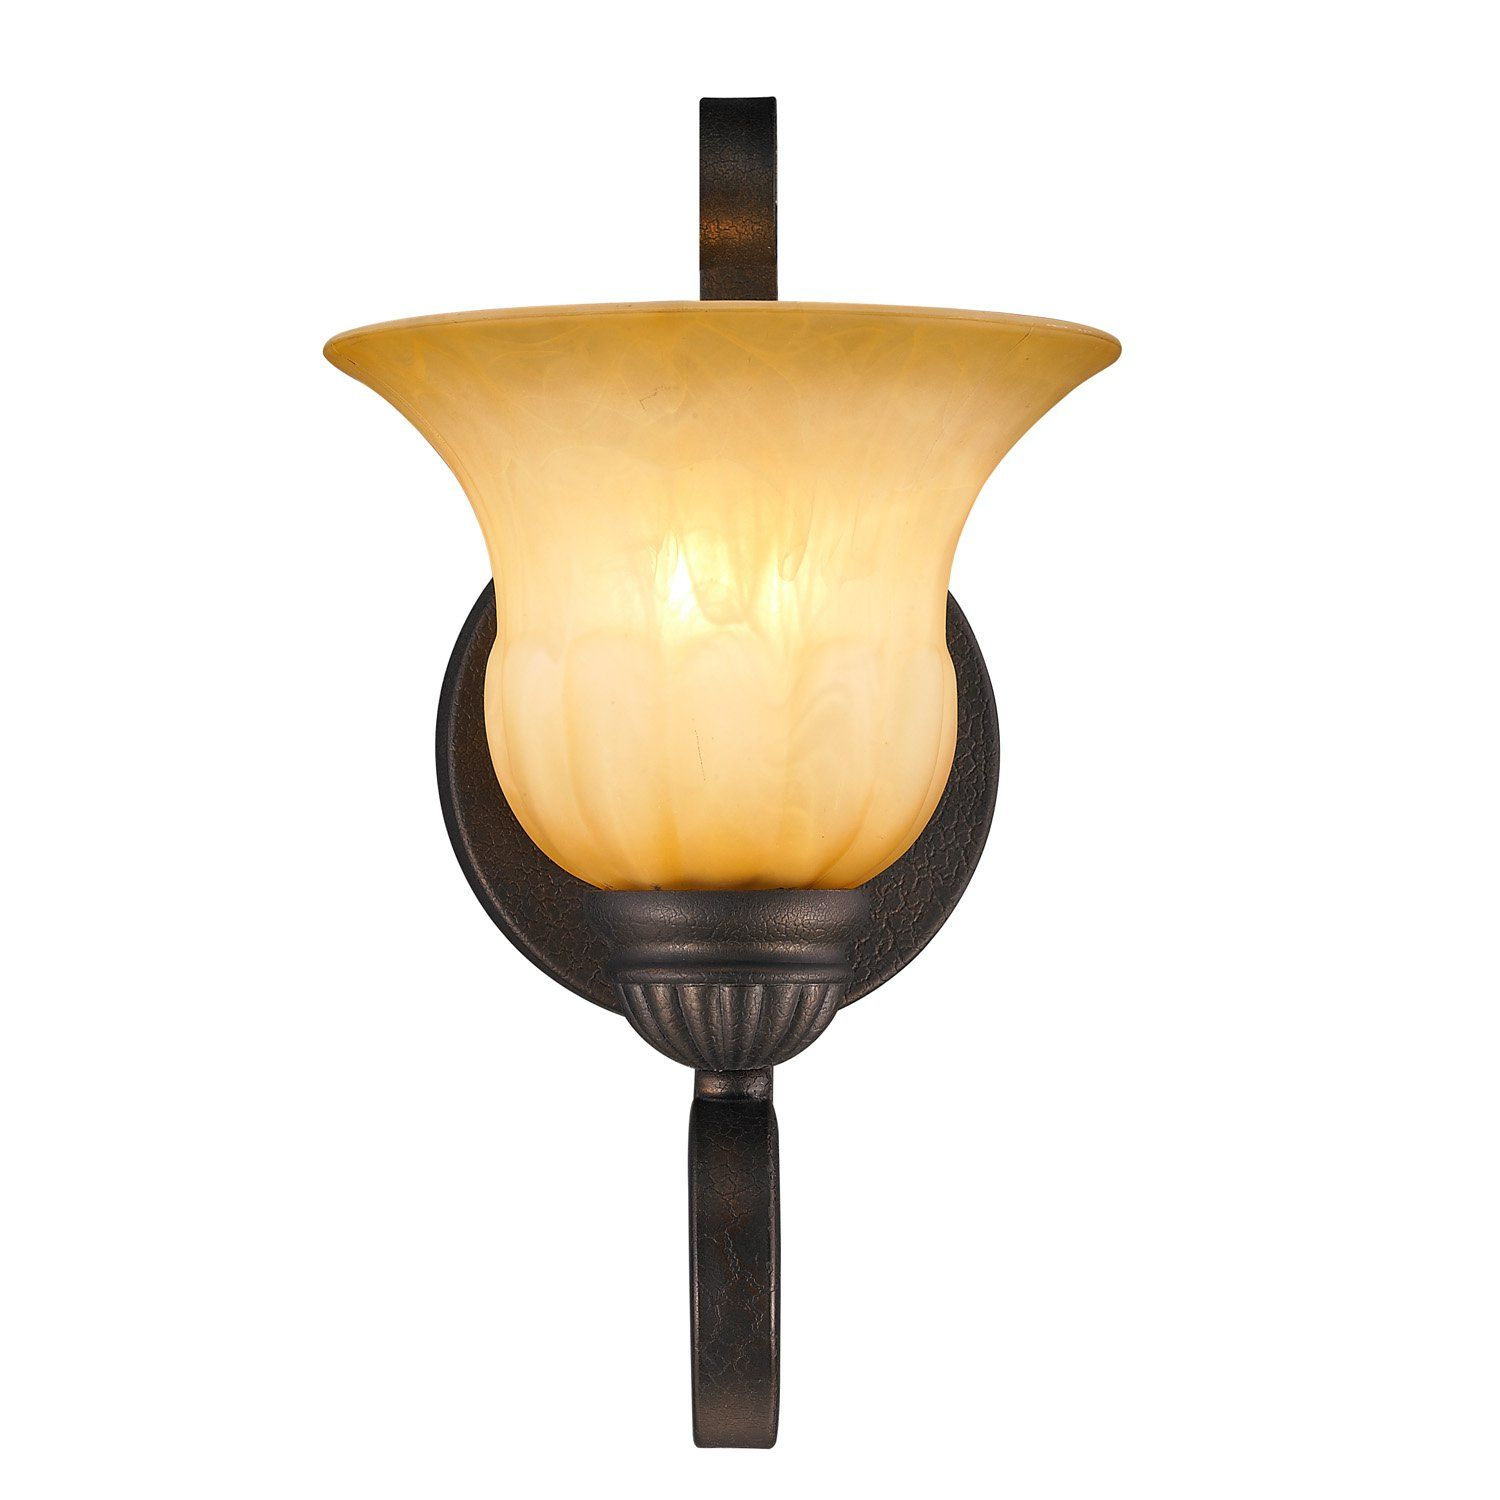 Mayfair Light Wall Sconce in Leather Crackle with Creme Brulee